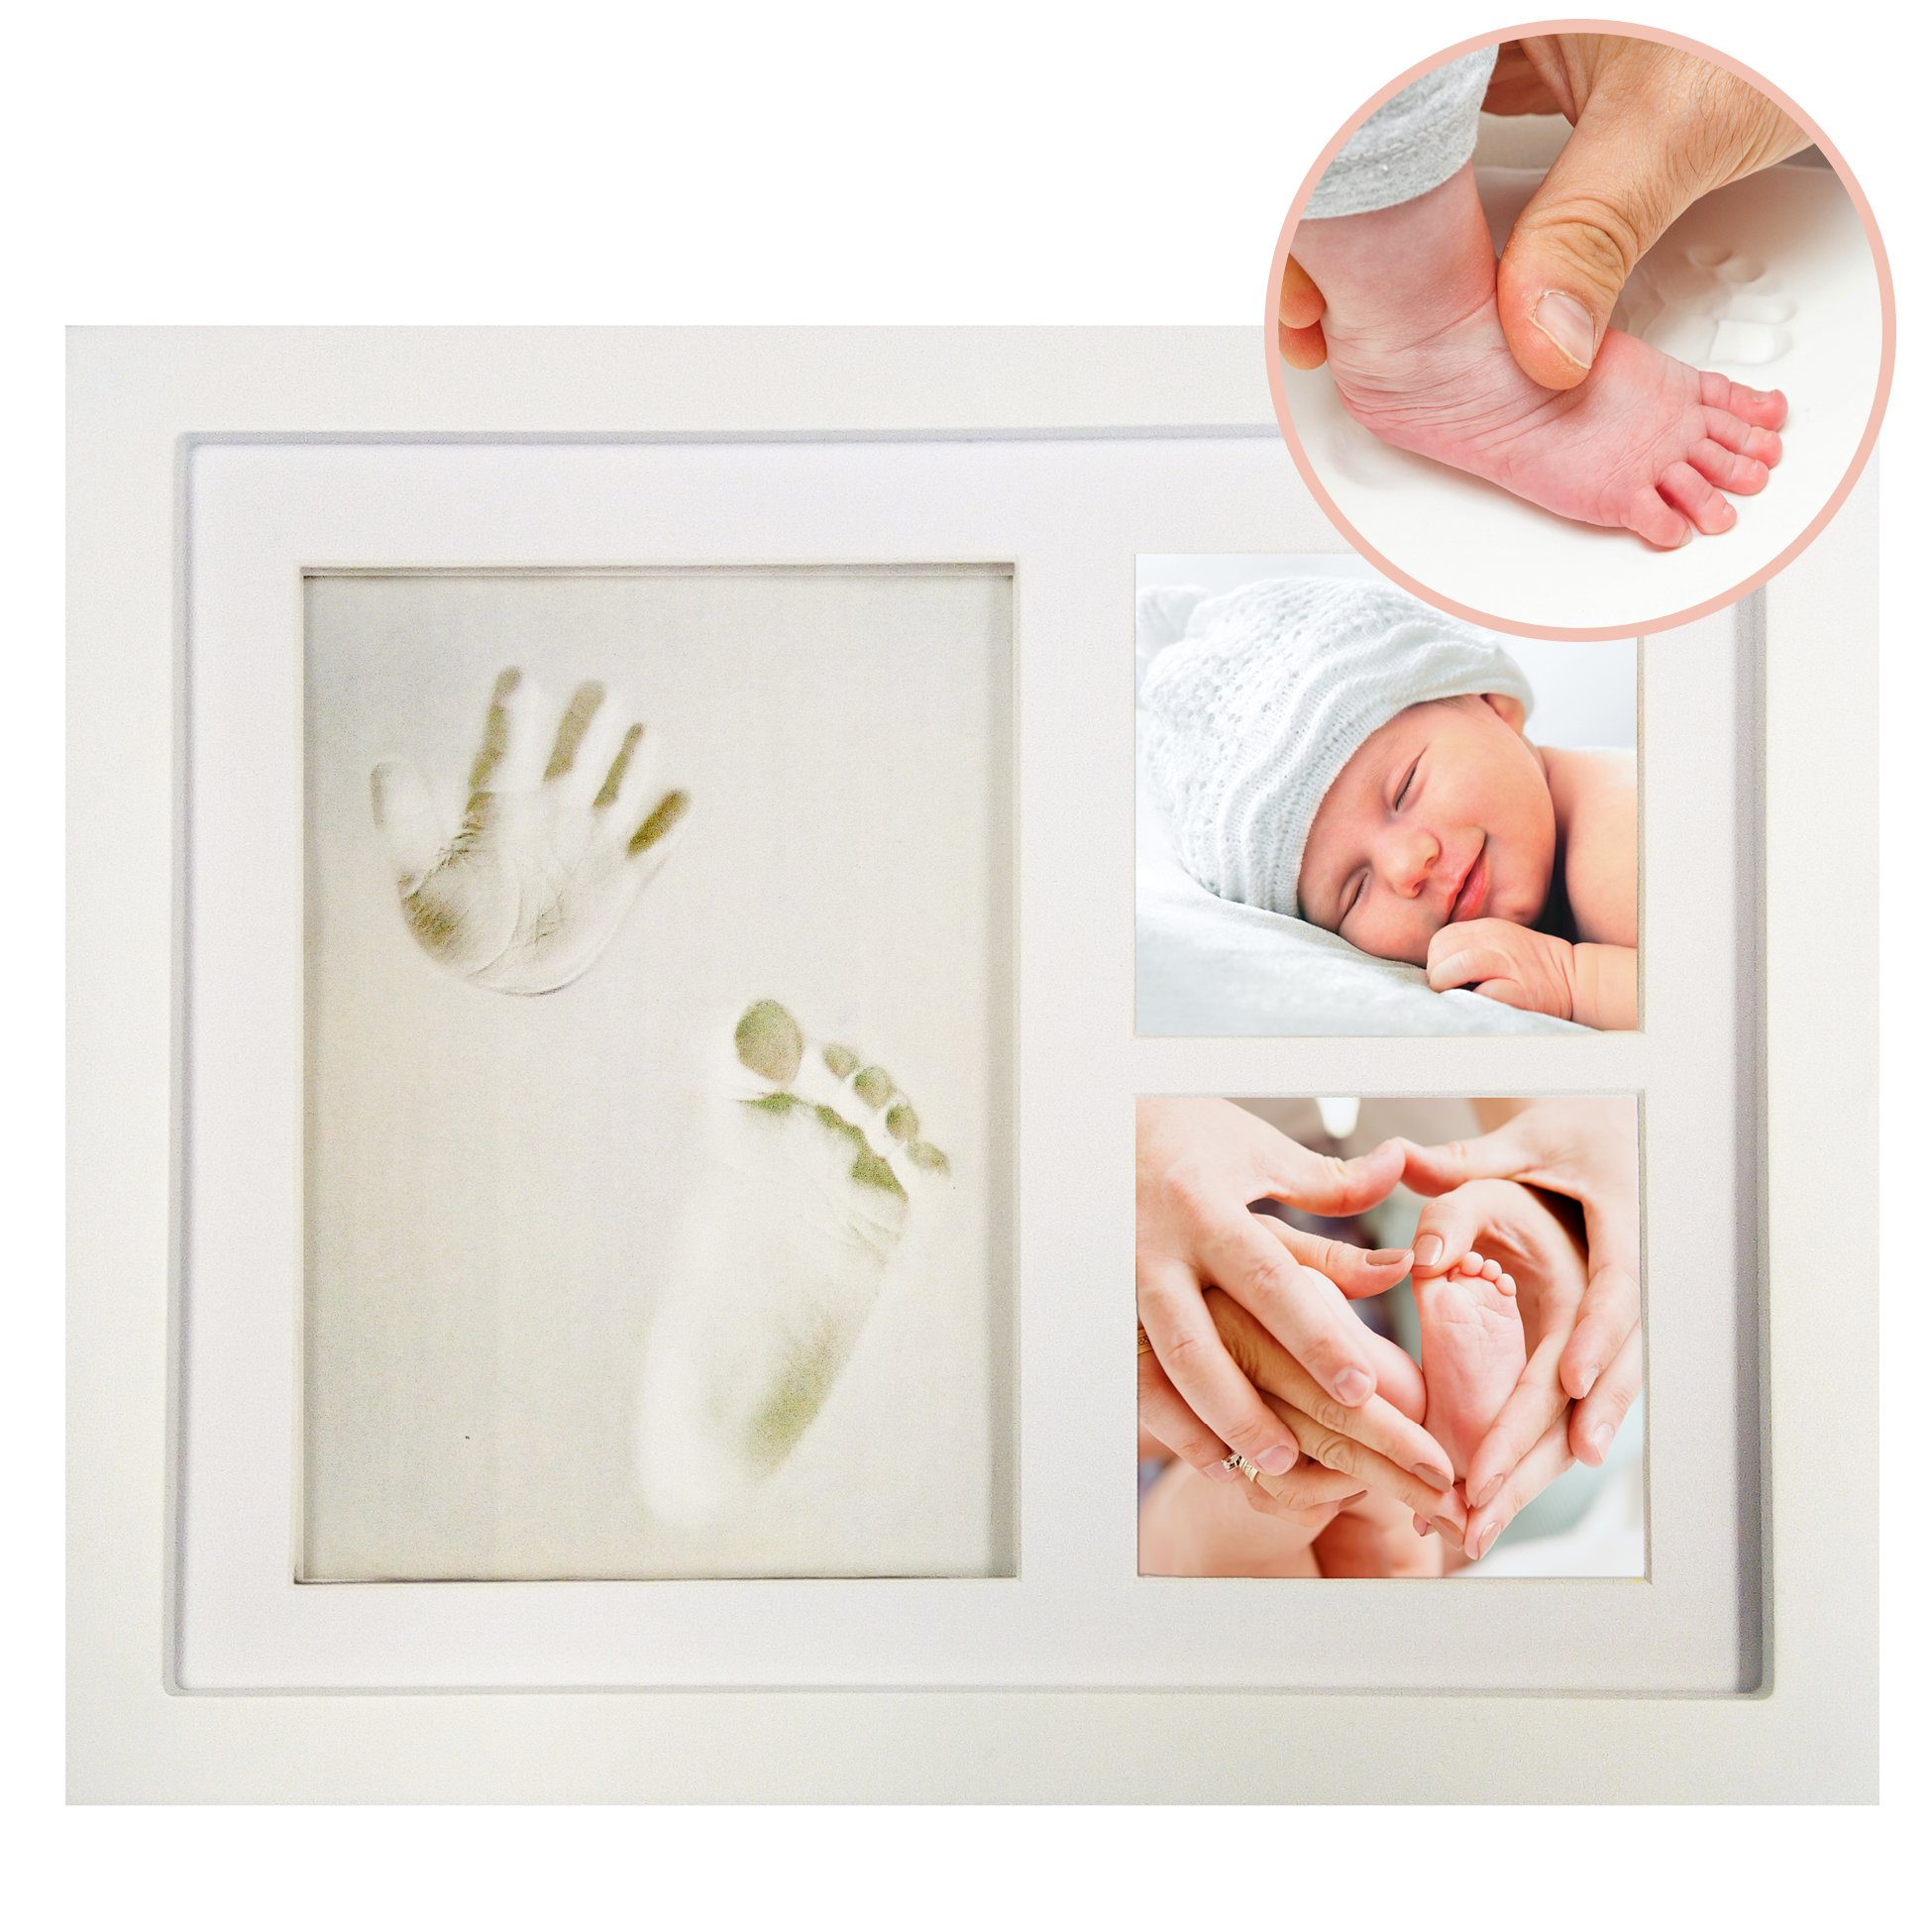 Clay Hand and Footprint Frame Kit for Babies, Kids and Pet Paw Prints - Includes 9.5'' x 11.5'' Photo Frame, Clay, Roller, Mounting Hardware and Simple Instructions - by ''Pose''ies by ''Pose''ies